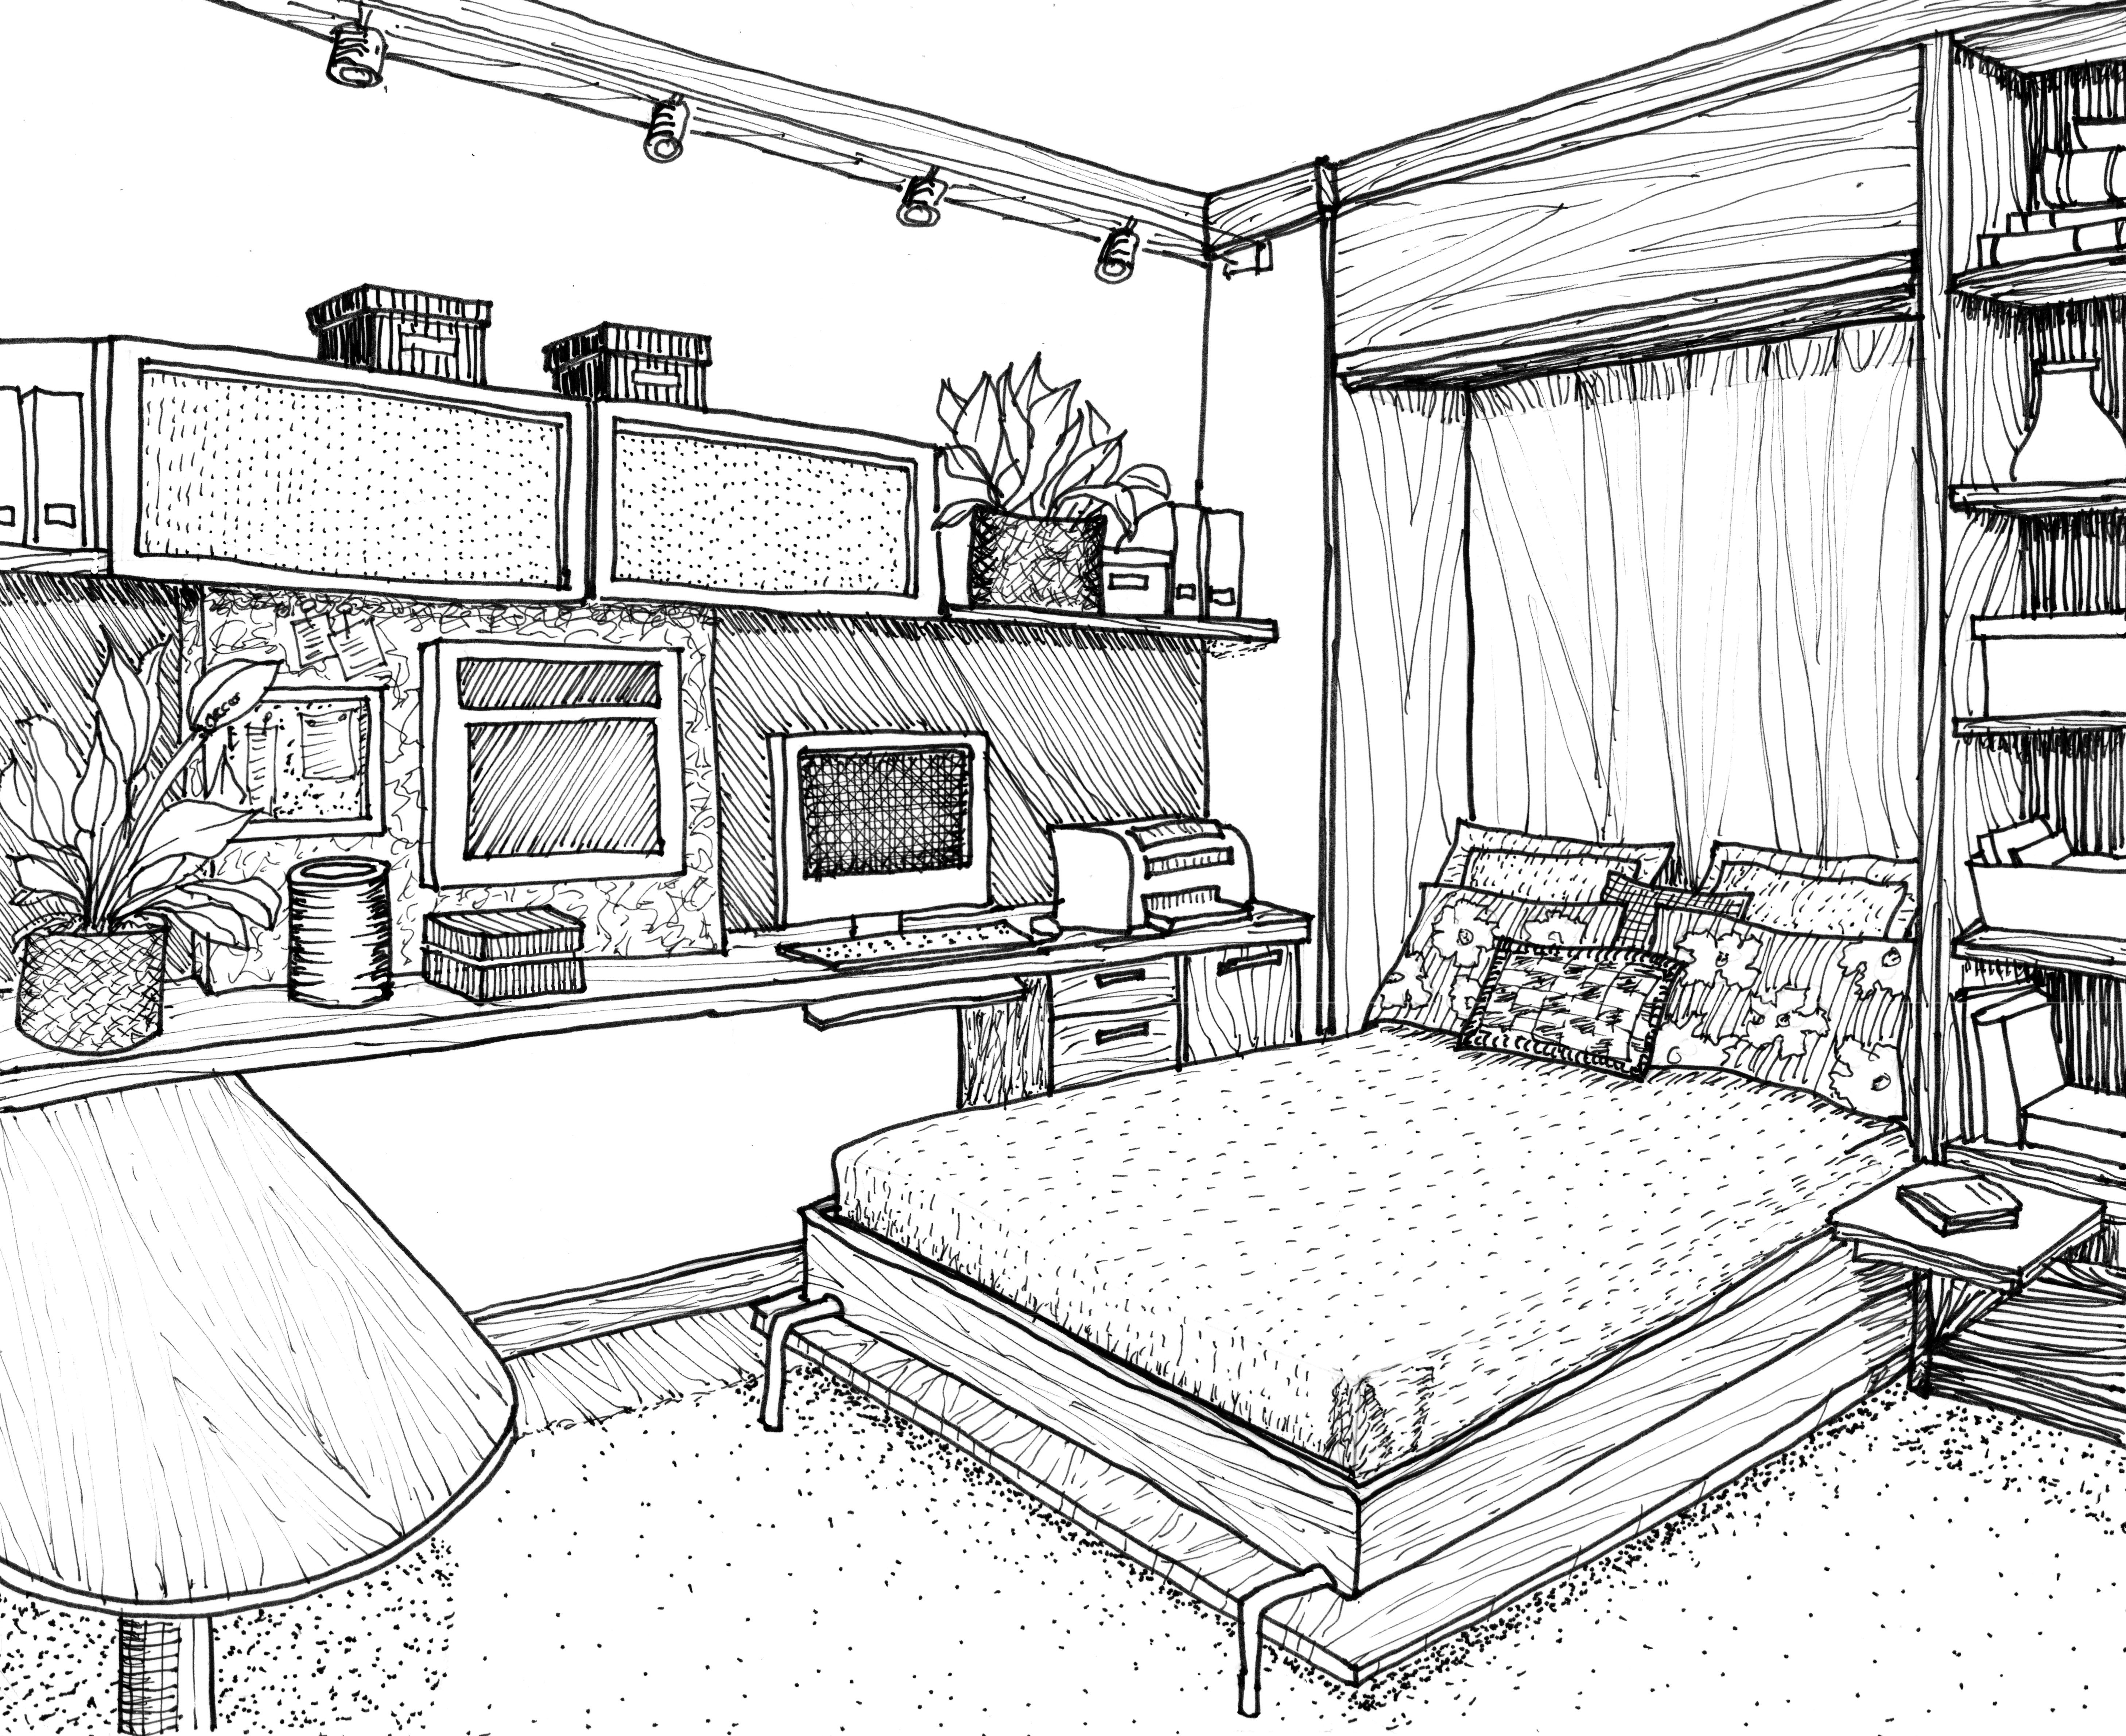 Bedroom drawing ideas simple design 1 on living room simple home design